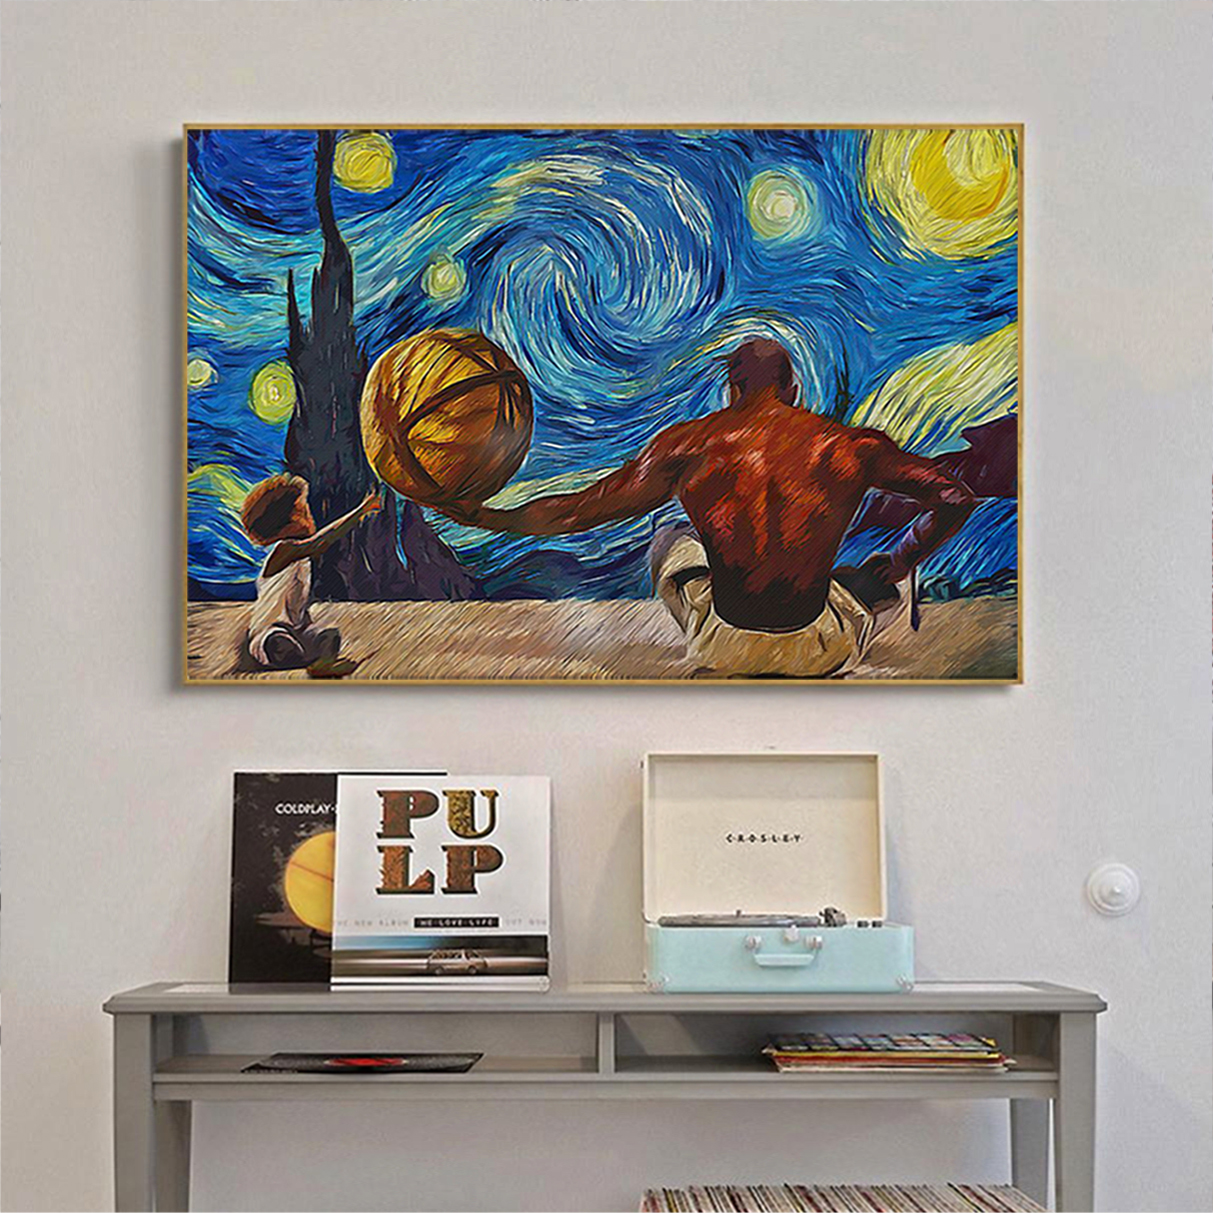 Black father and son starry night van gogh poster A3